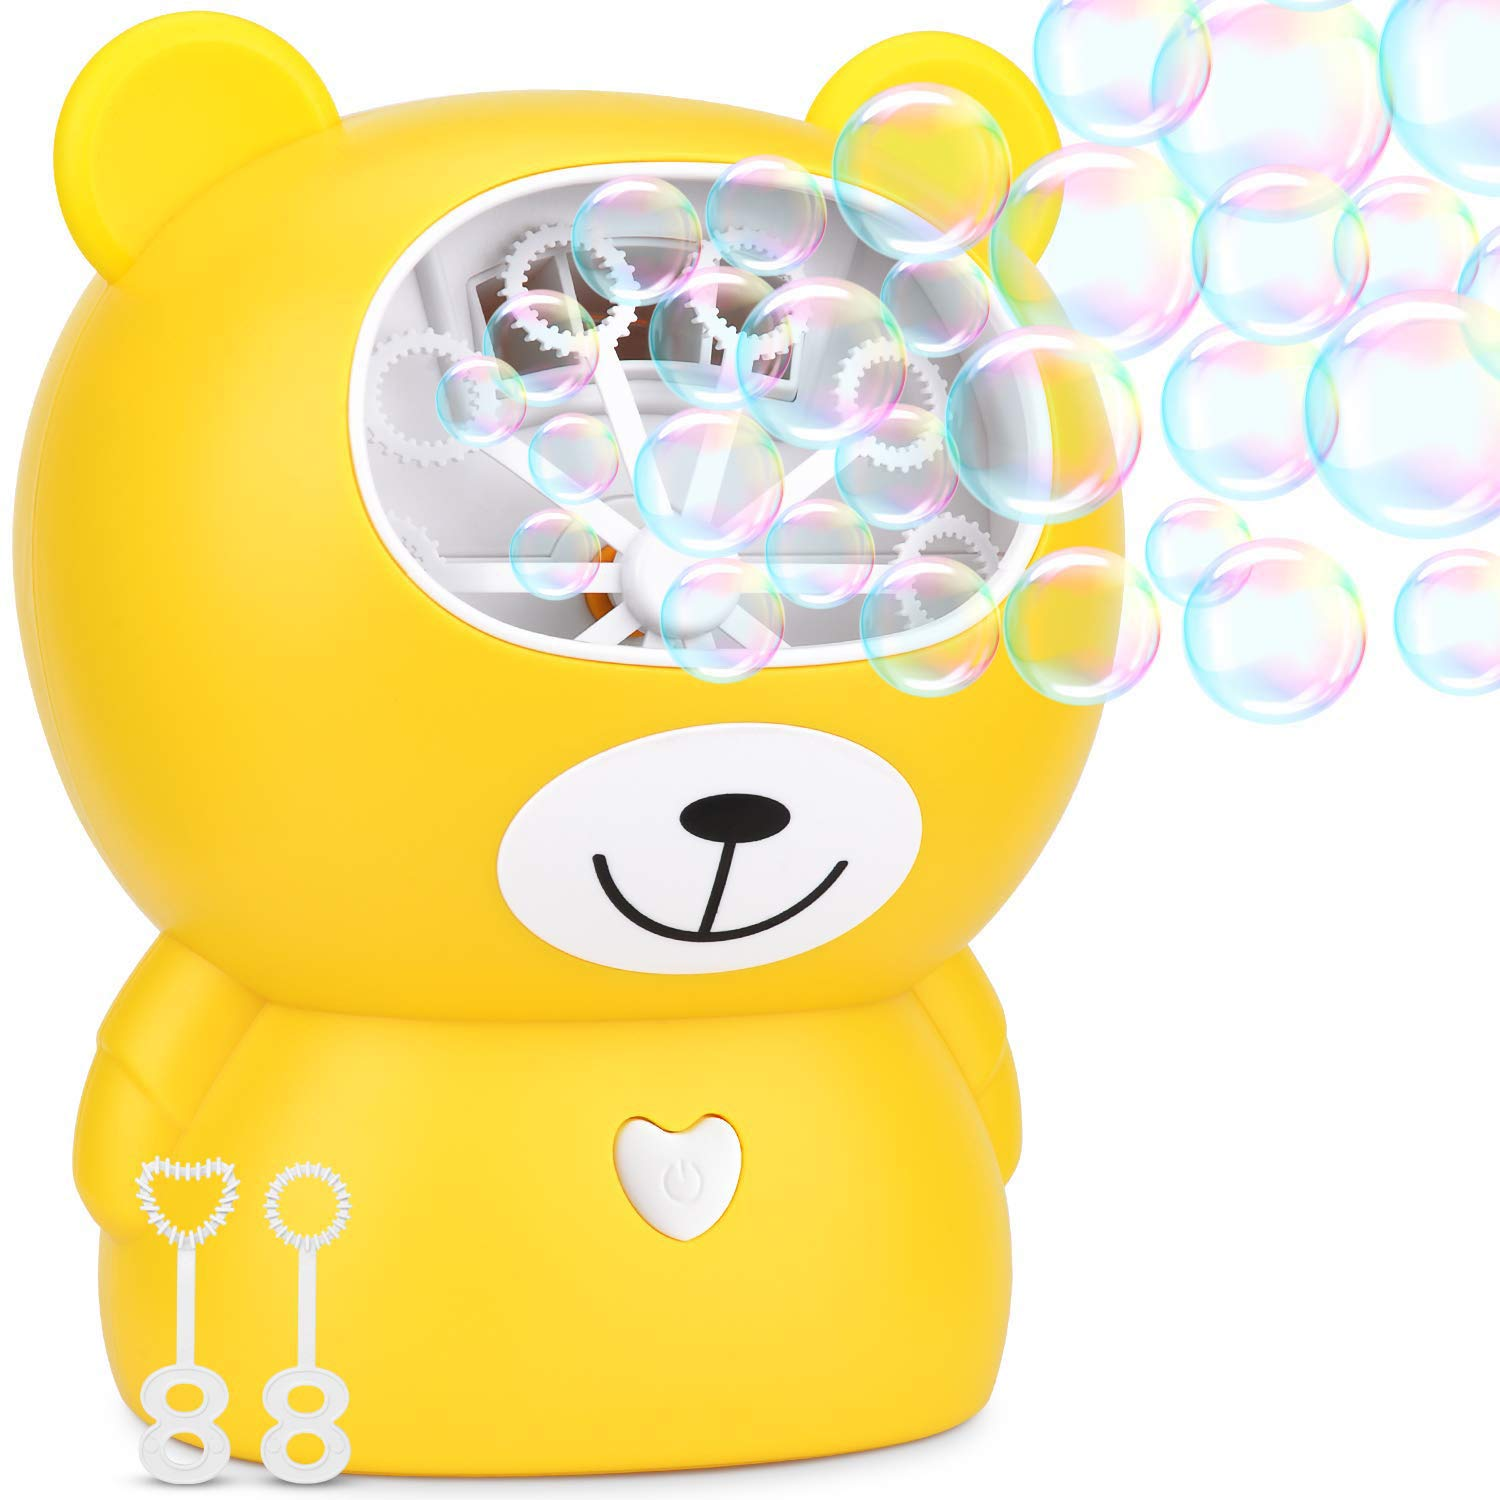 JUN GUANG Electric Bubble Toy Bubble Blower Machine for Kids Bubble Blower More Than 800 Bubbles Per Minute Wedding Bubble Machine, Battery Operated